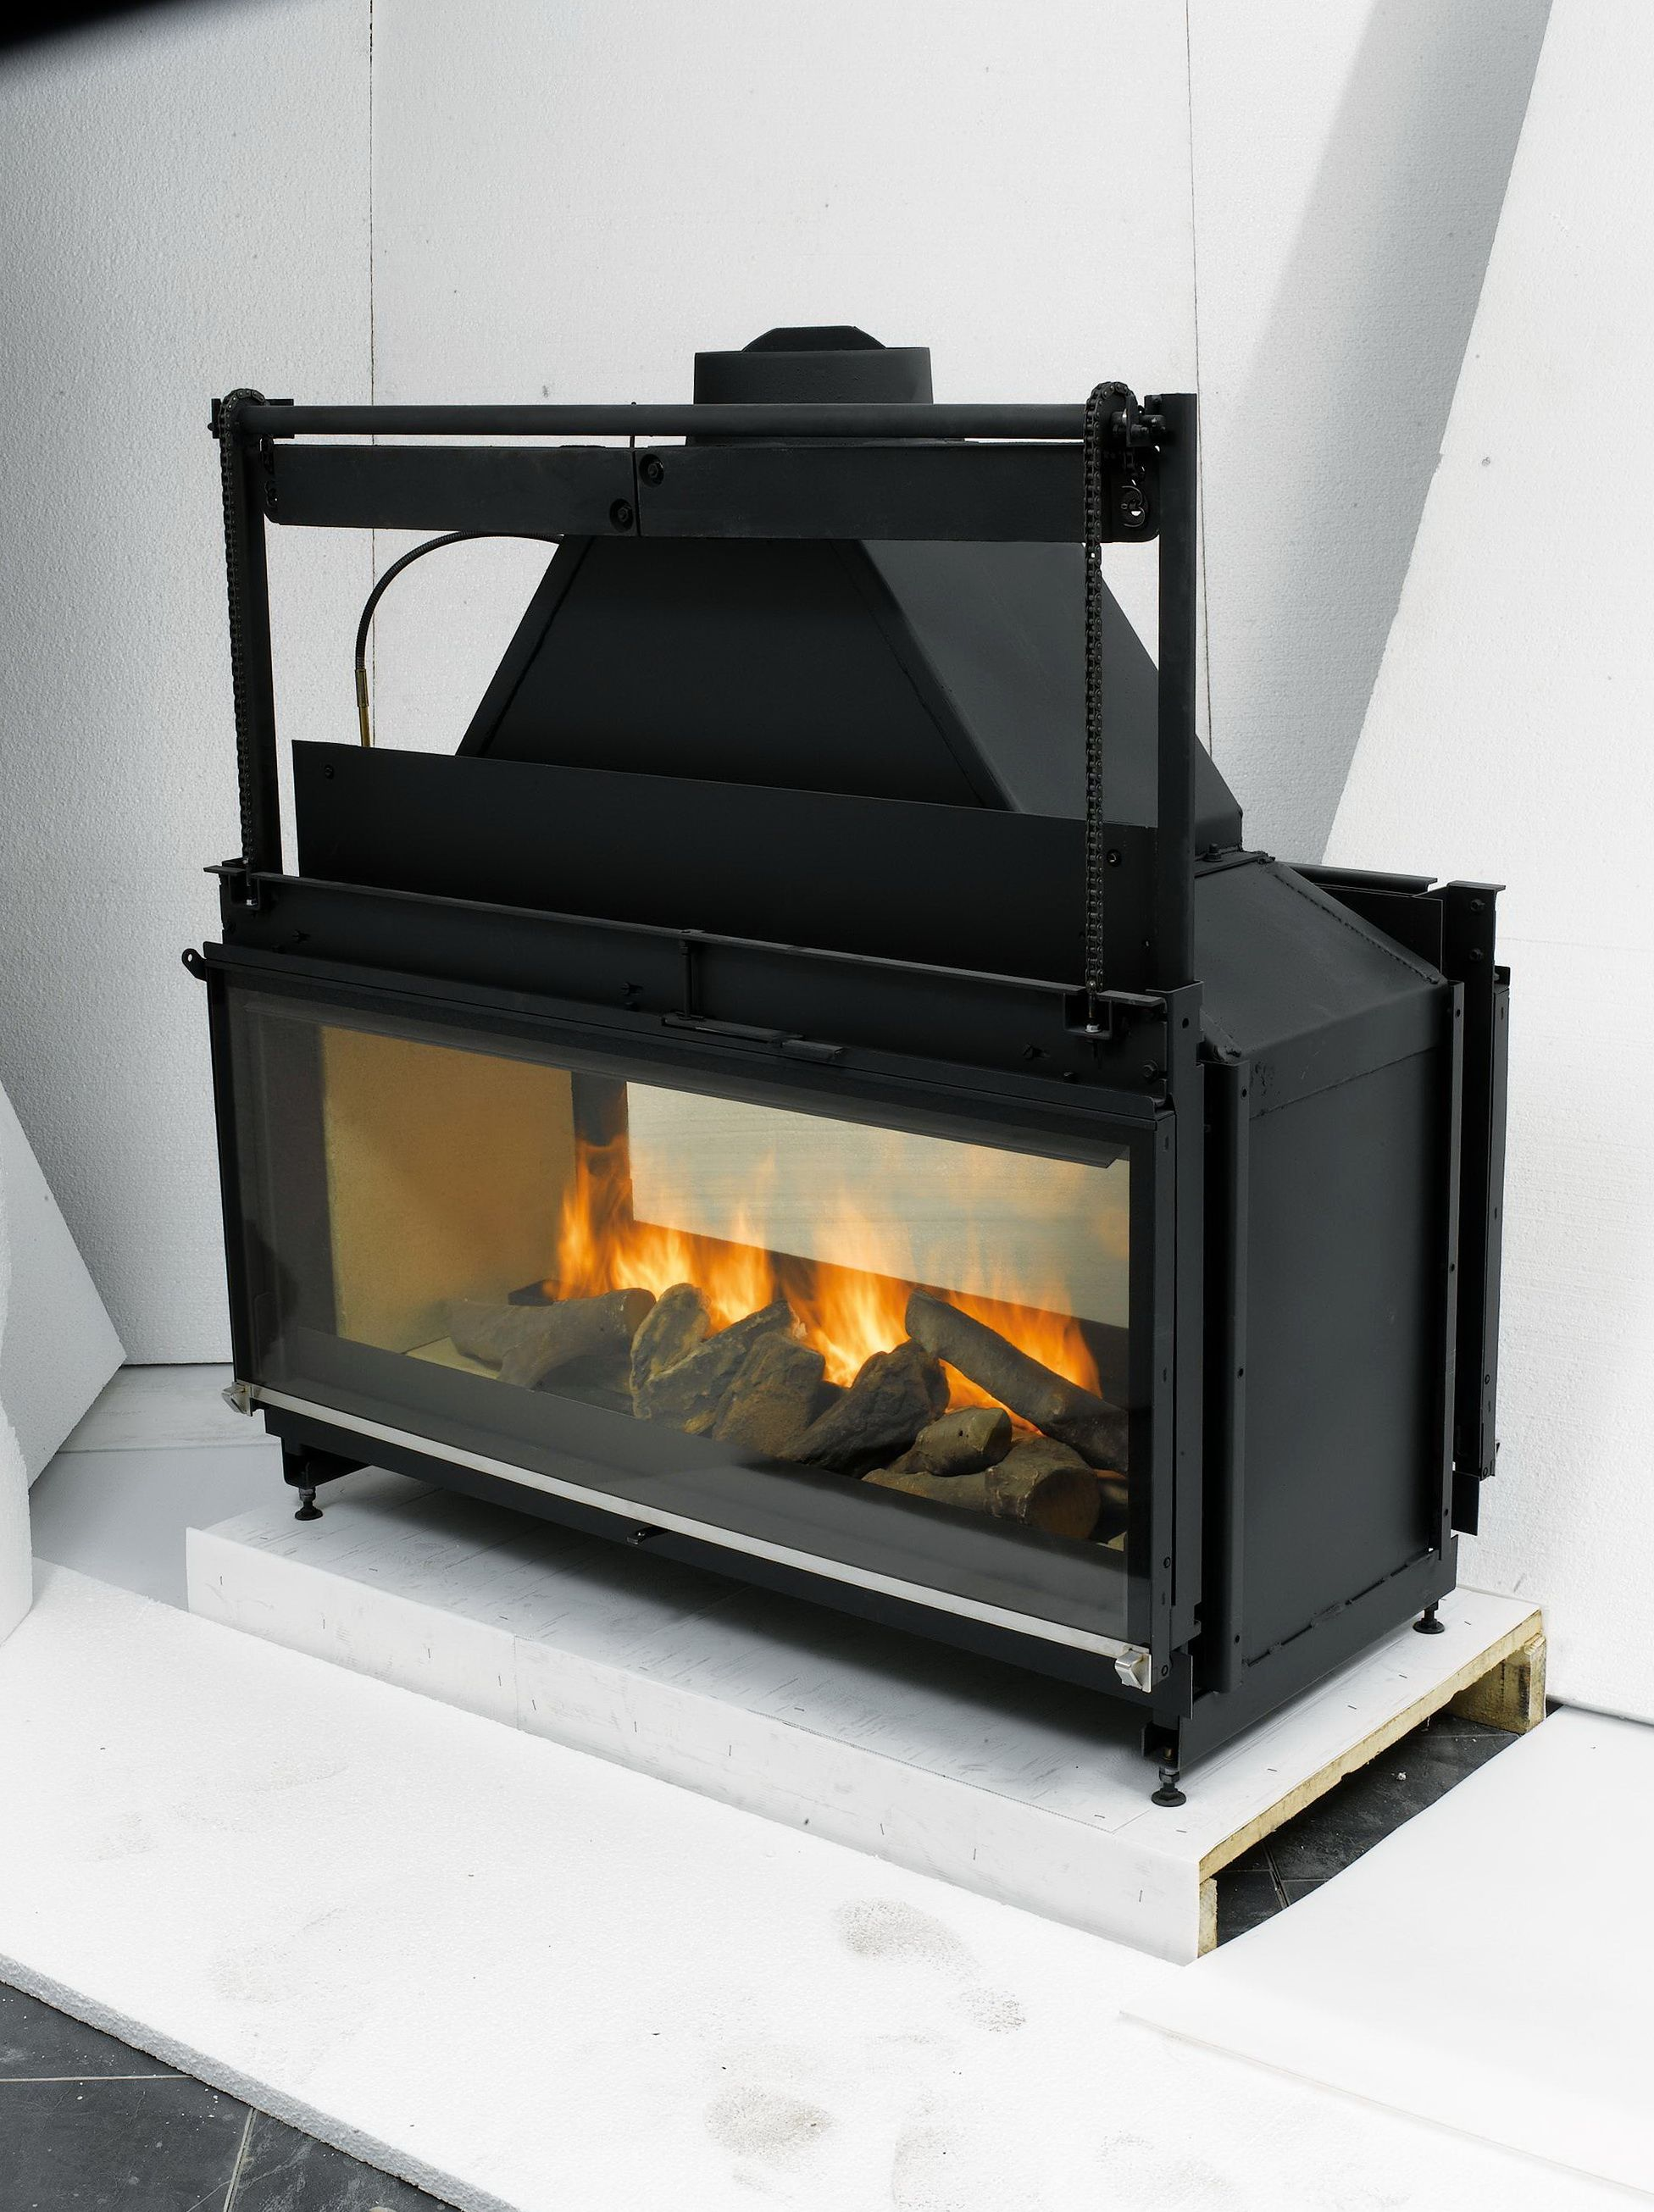 inserts stoves ontario a burlington wood alterra hamilton burning fireplace